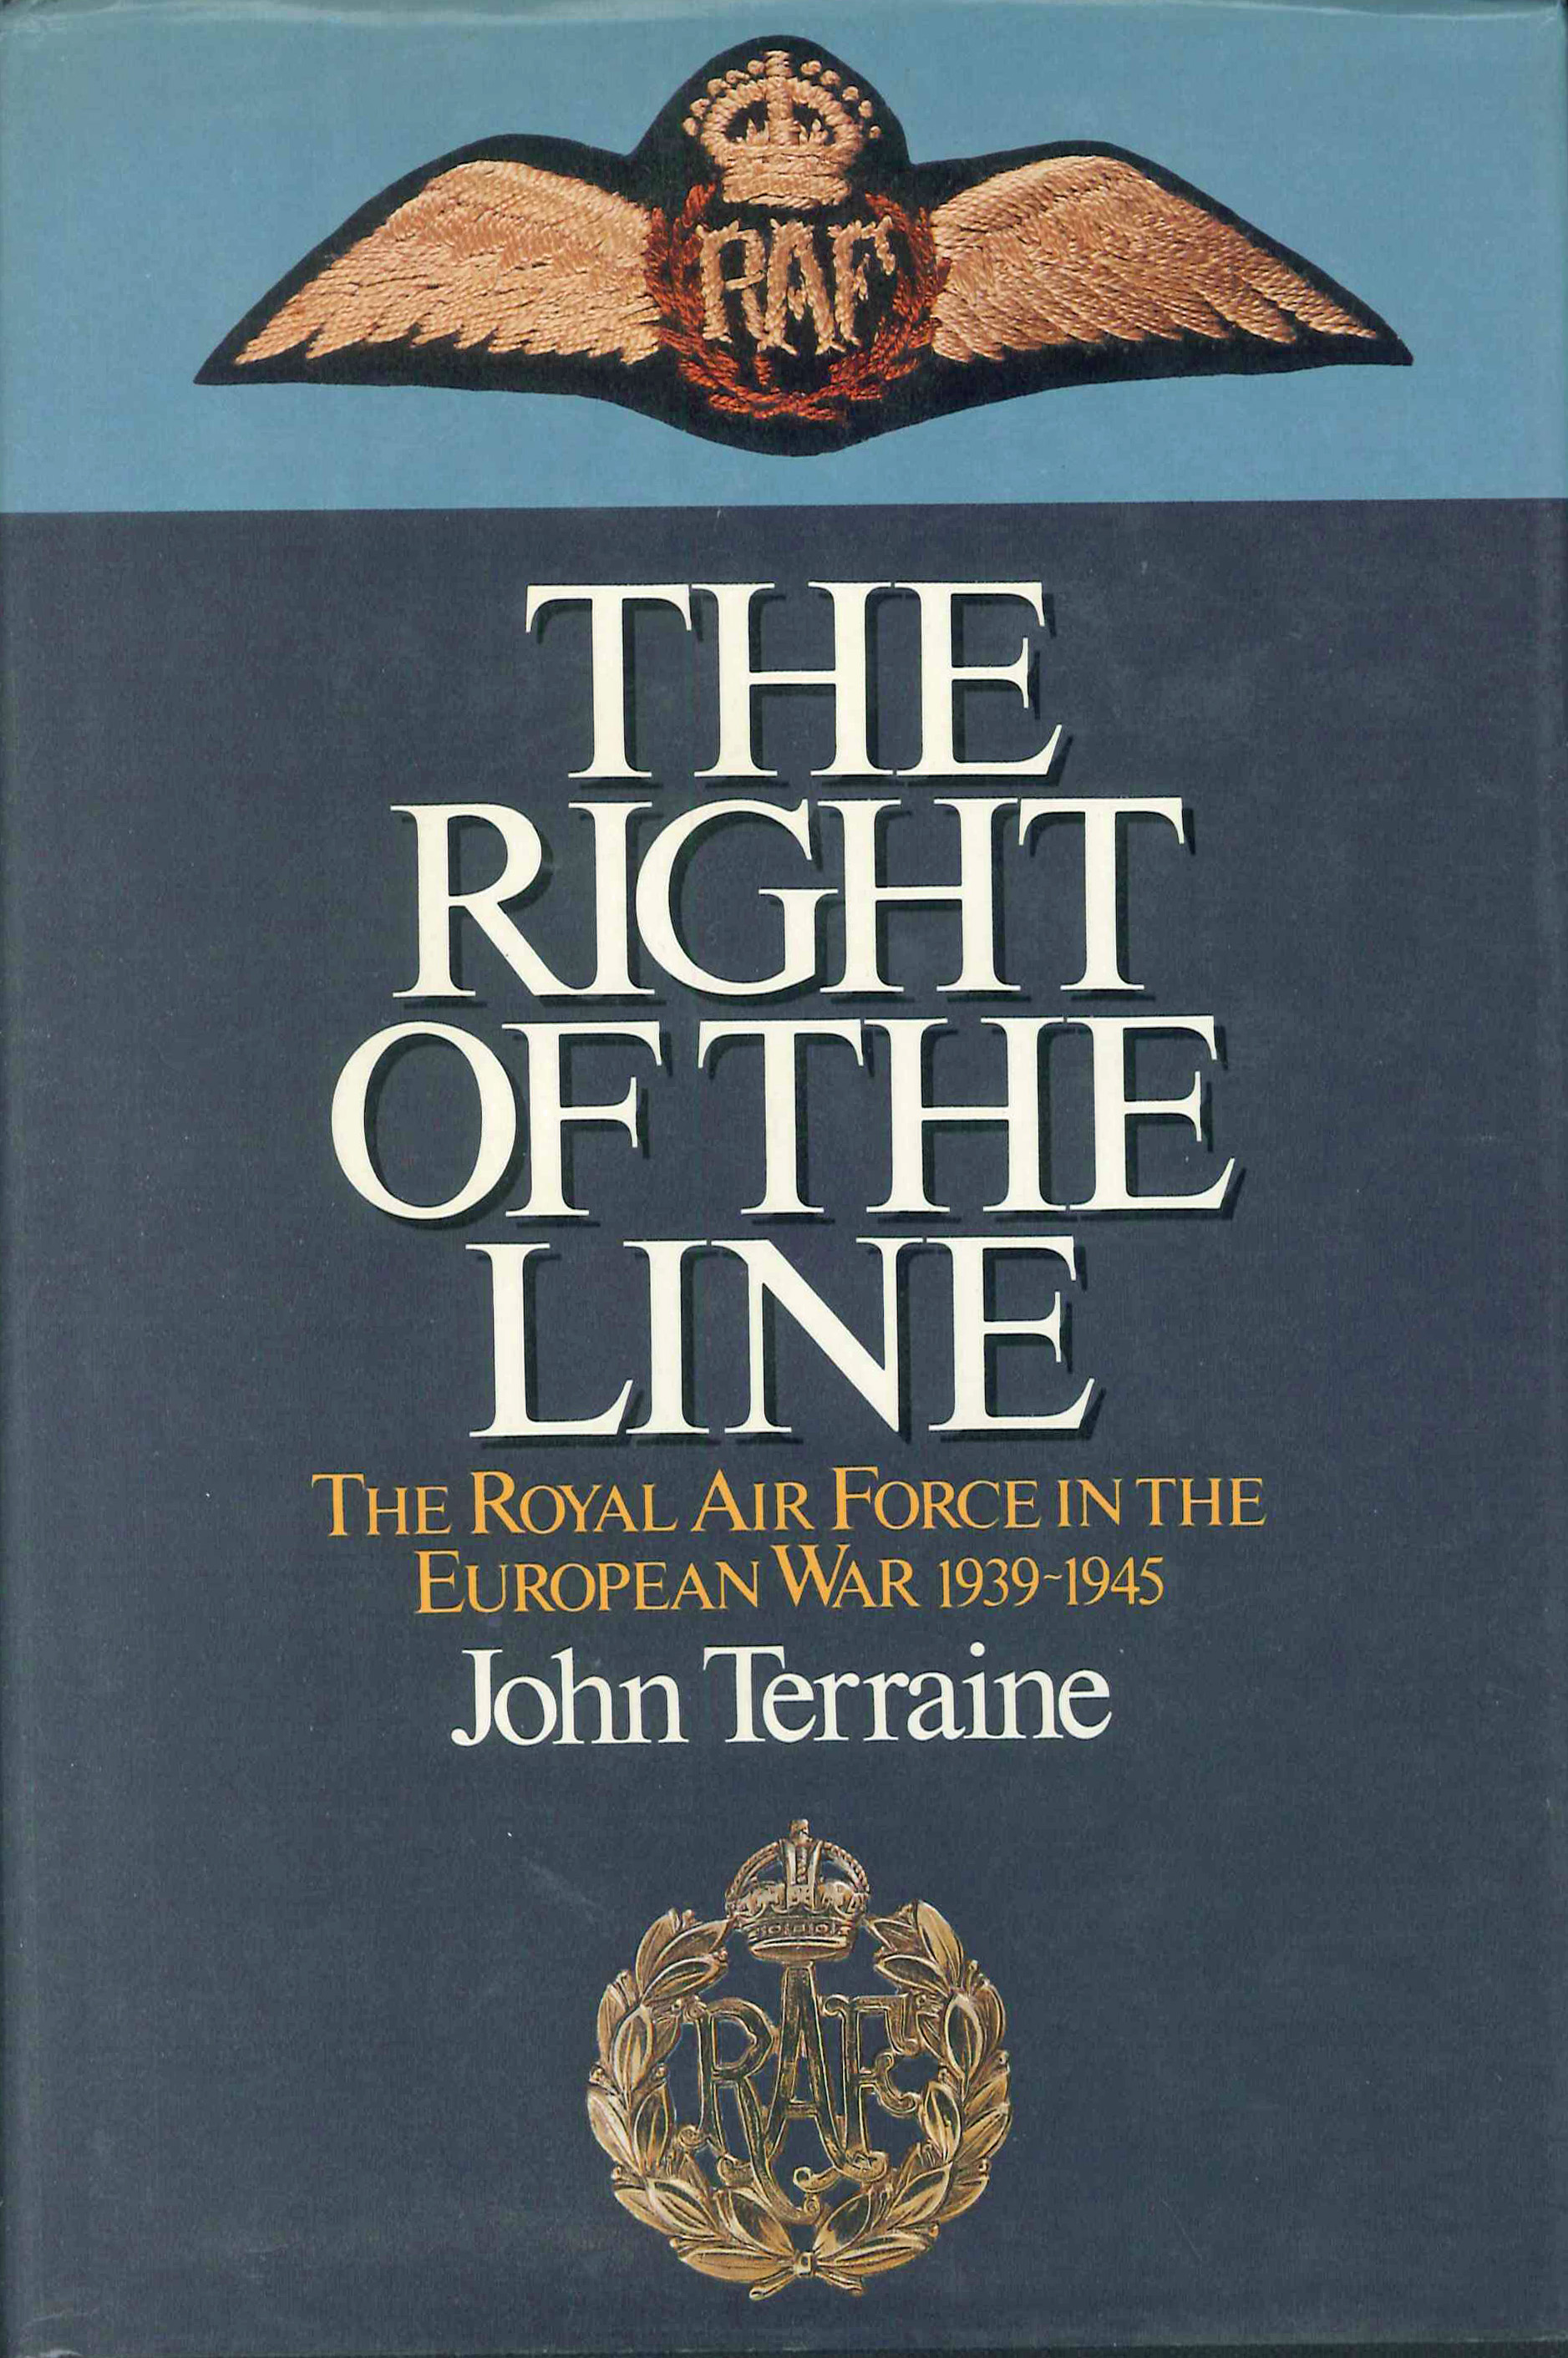 The Right of the Line: The Royal Air Force in the European War 1939-1945